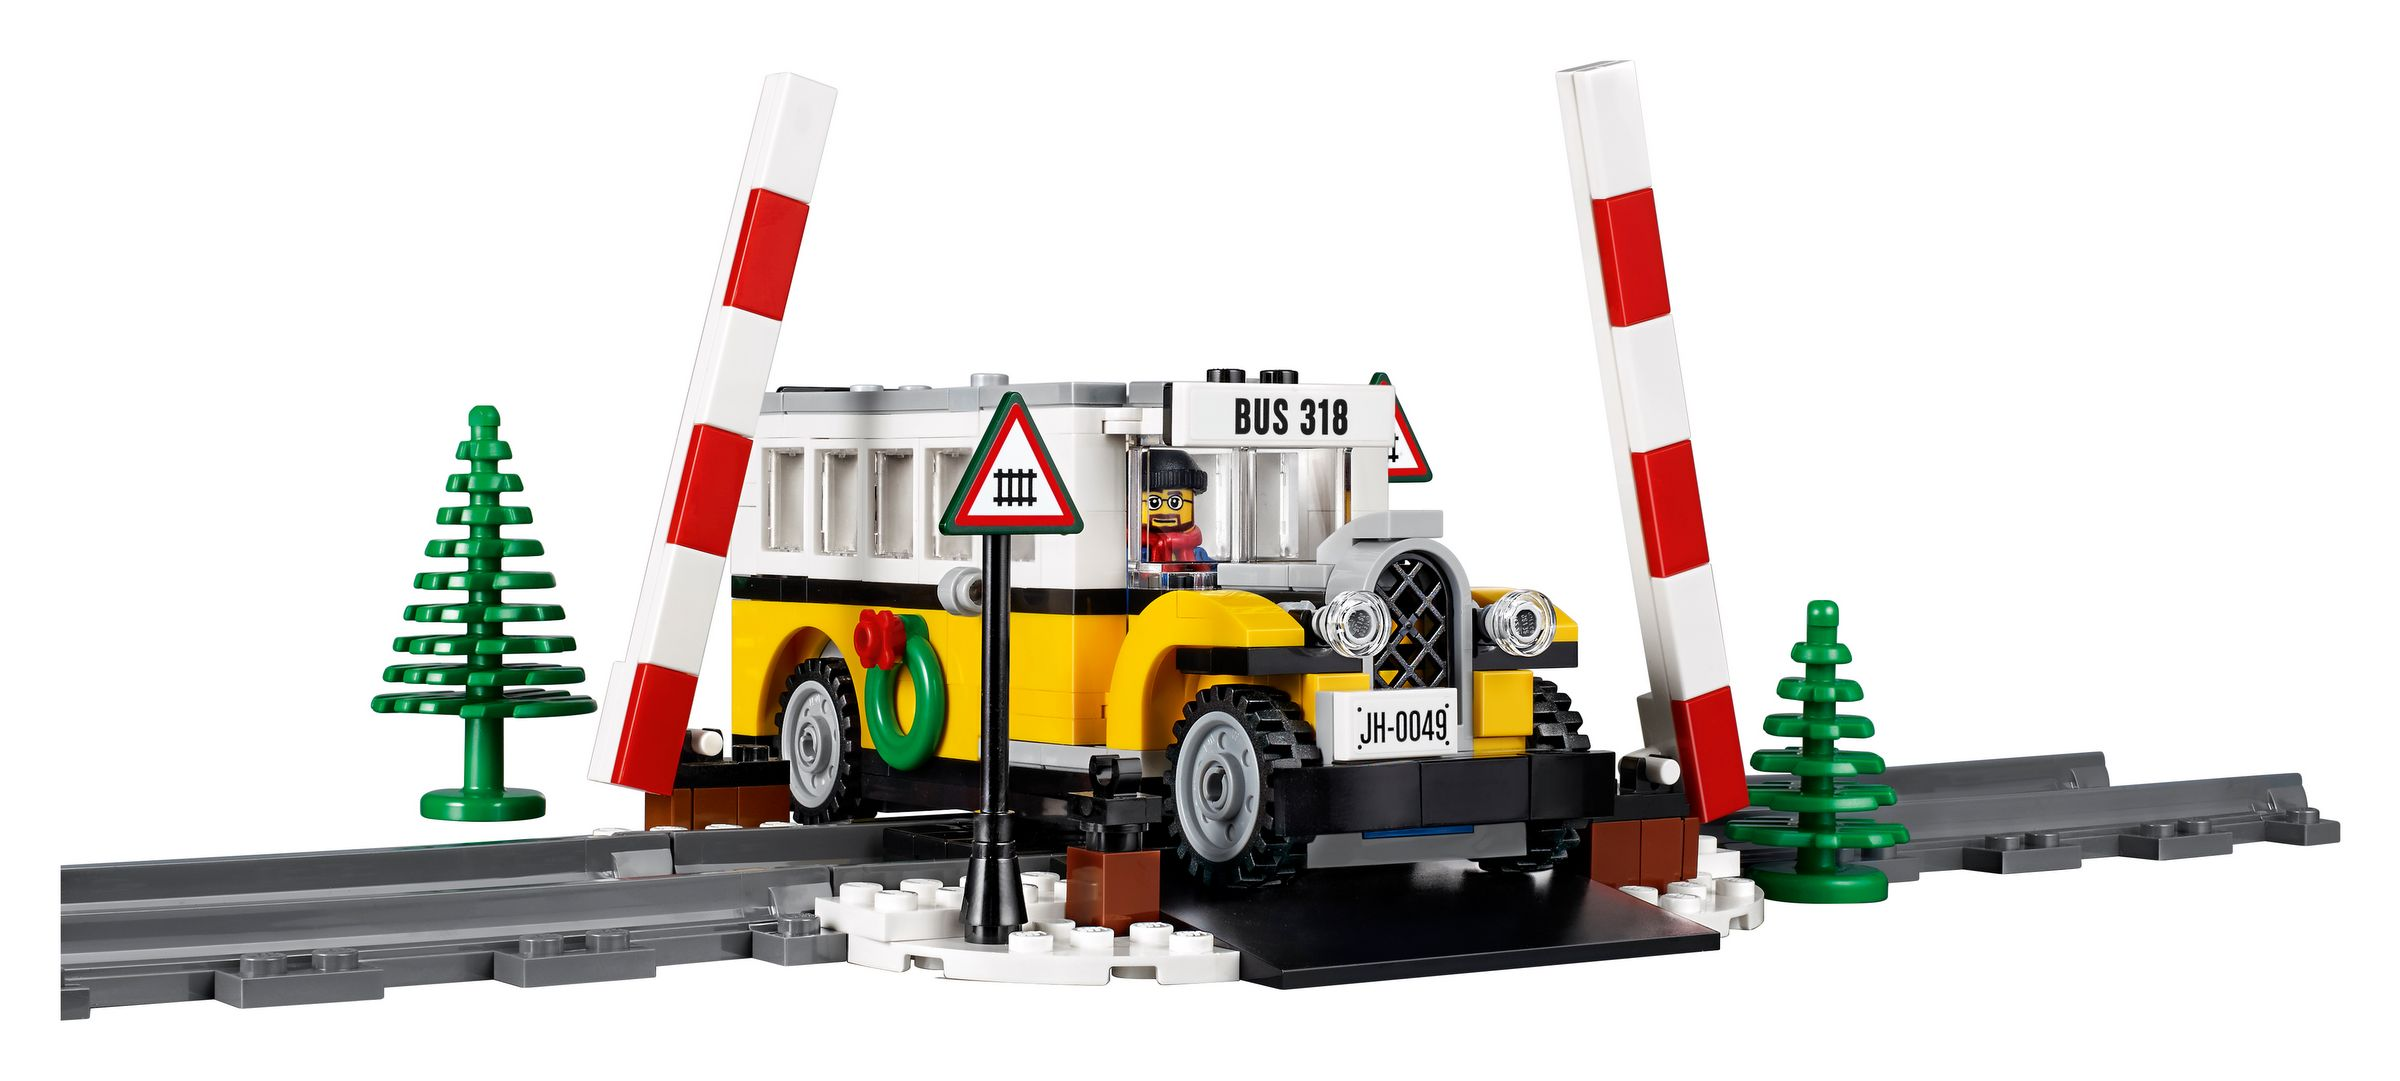 LEGO Advanced Models 10259 Winterlicher Bahnhof LEGO_10259_alt11.jpg